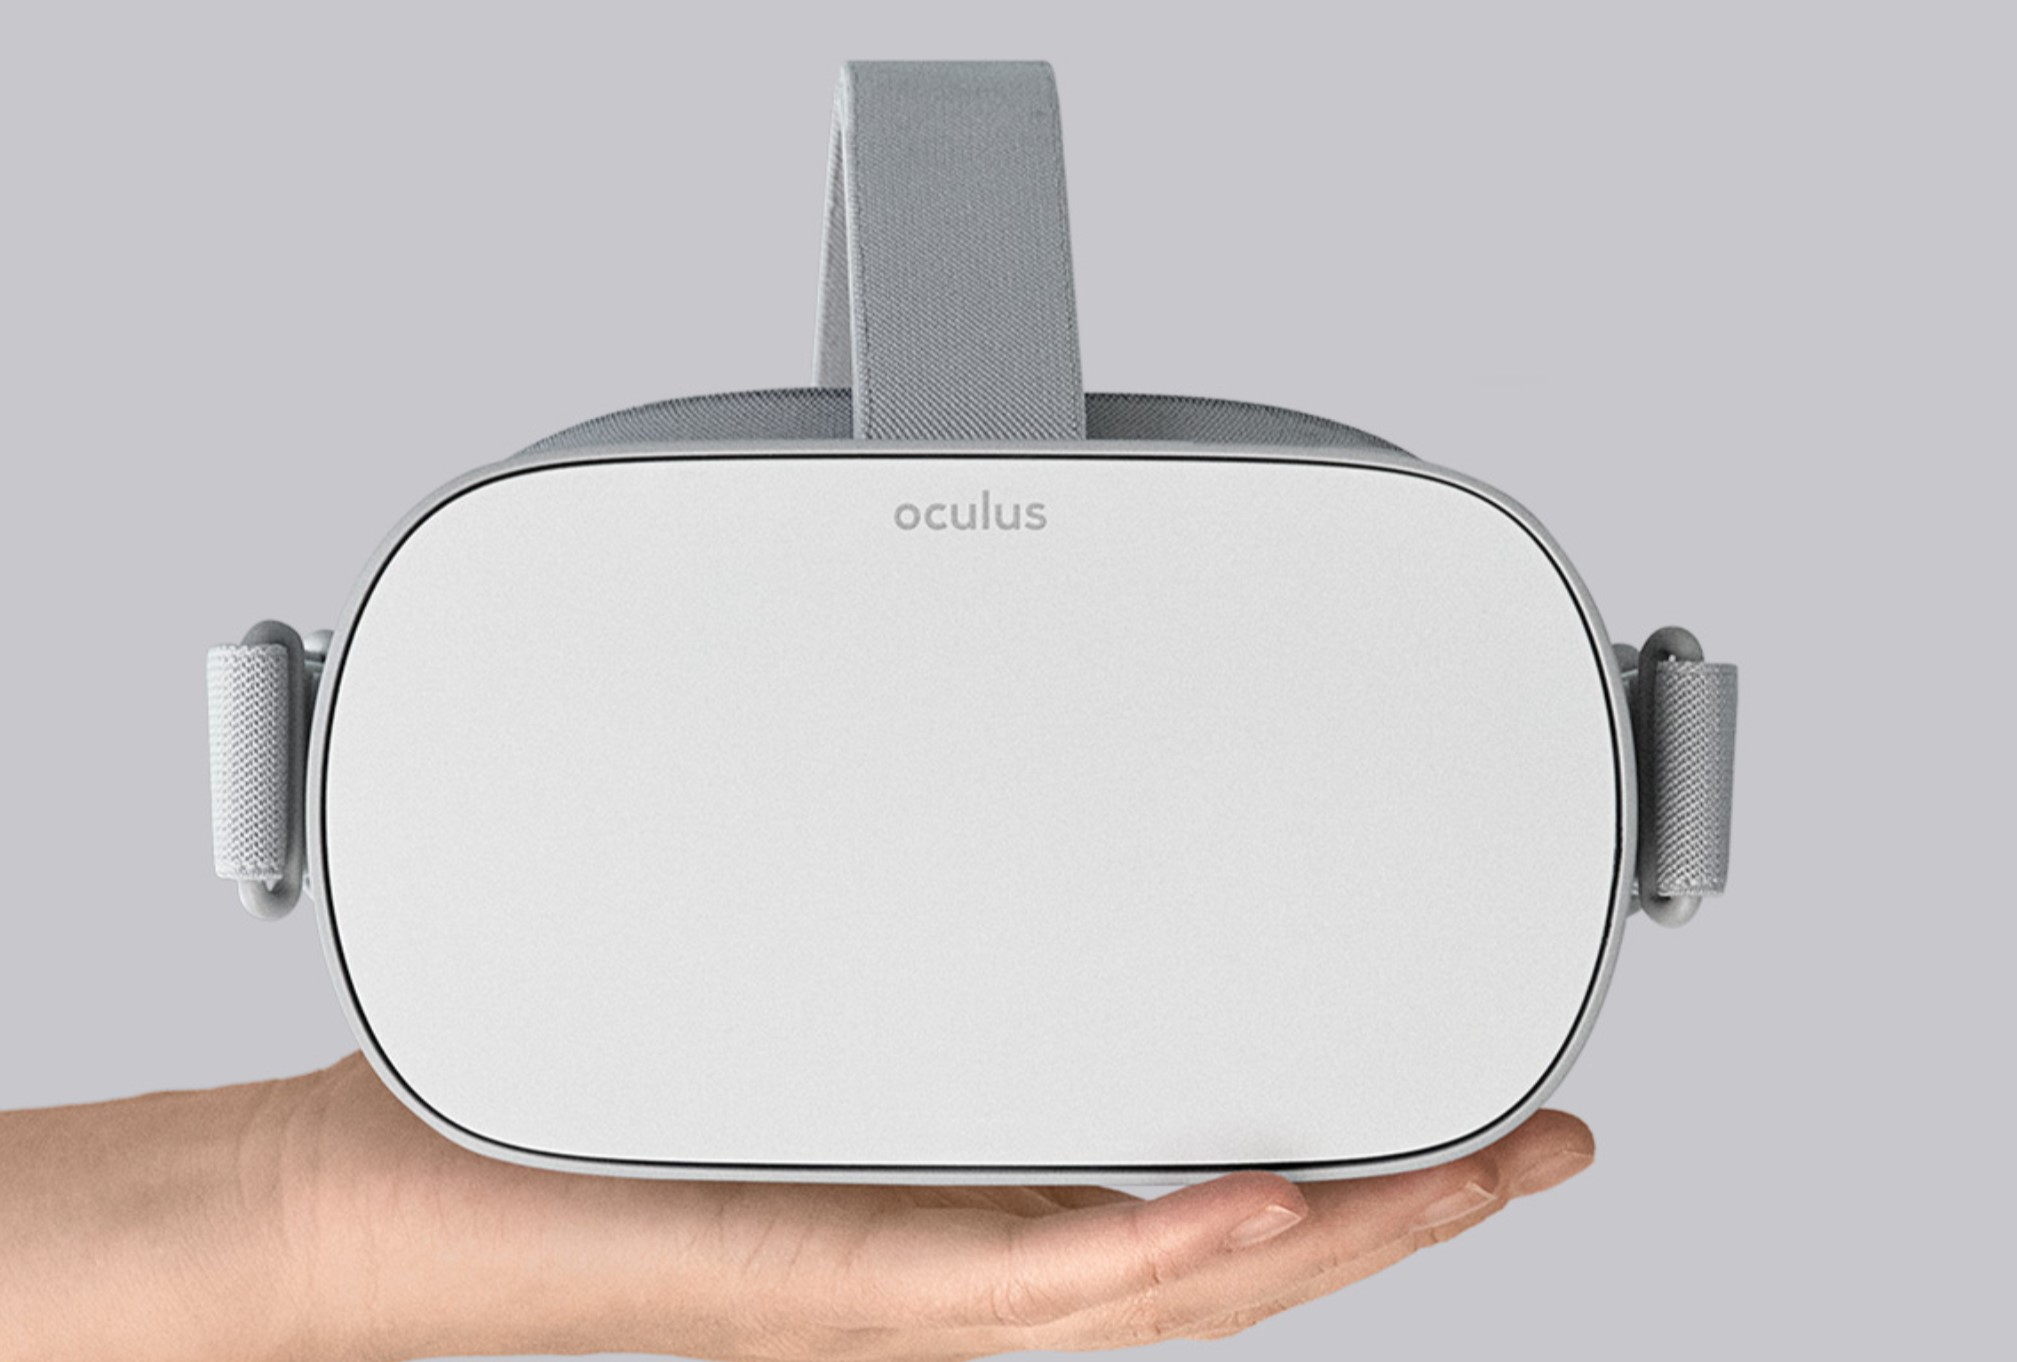 Oculus announces the stand-alone Oculus Go VR headset